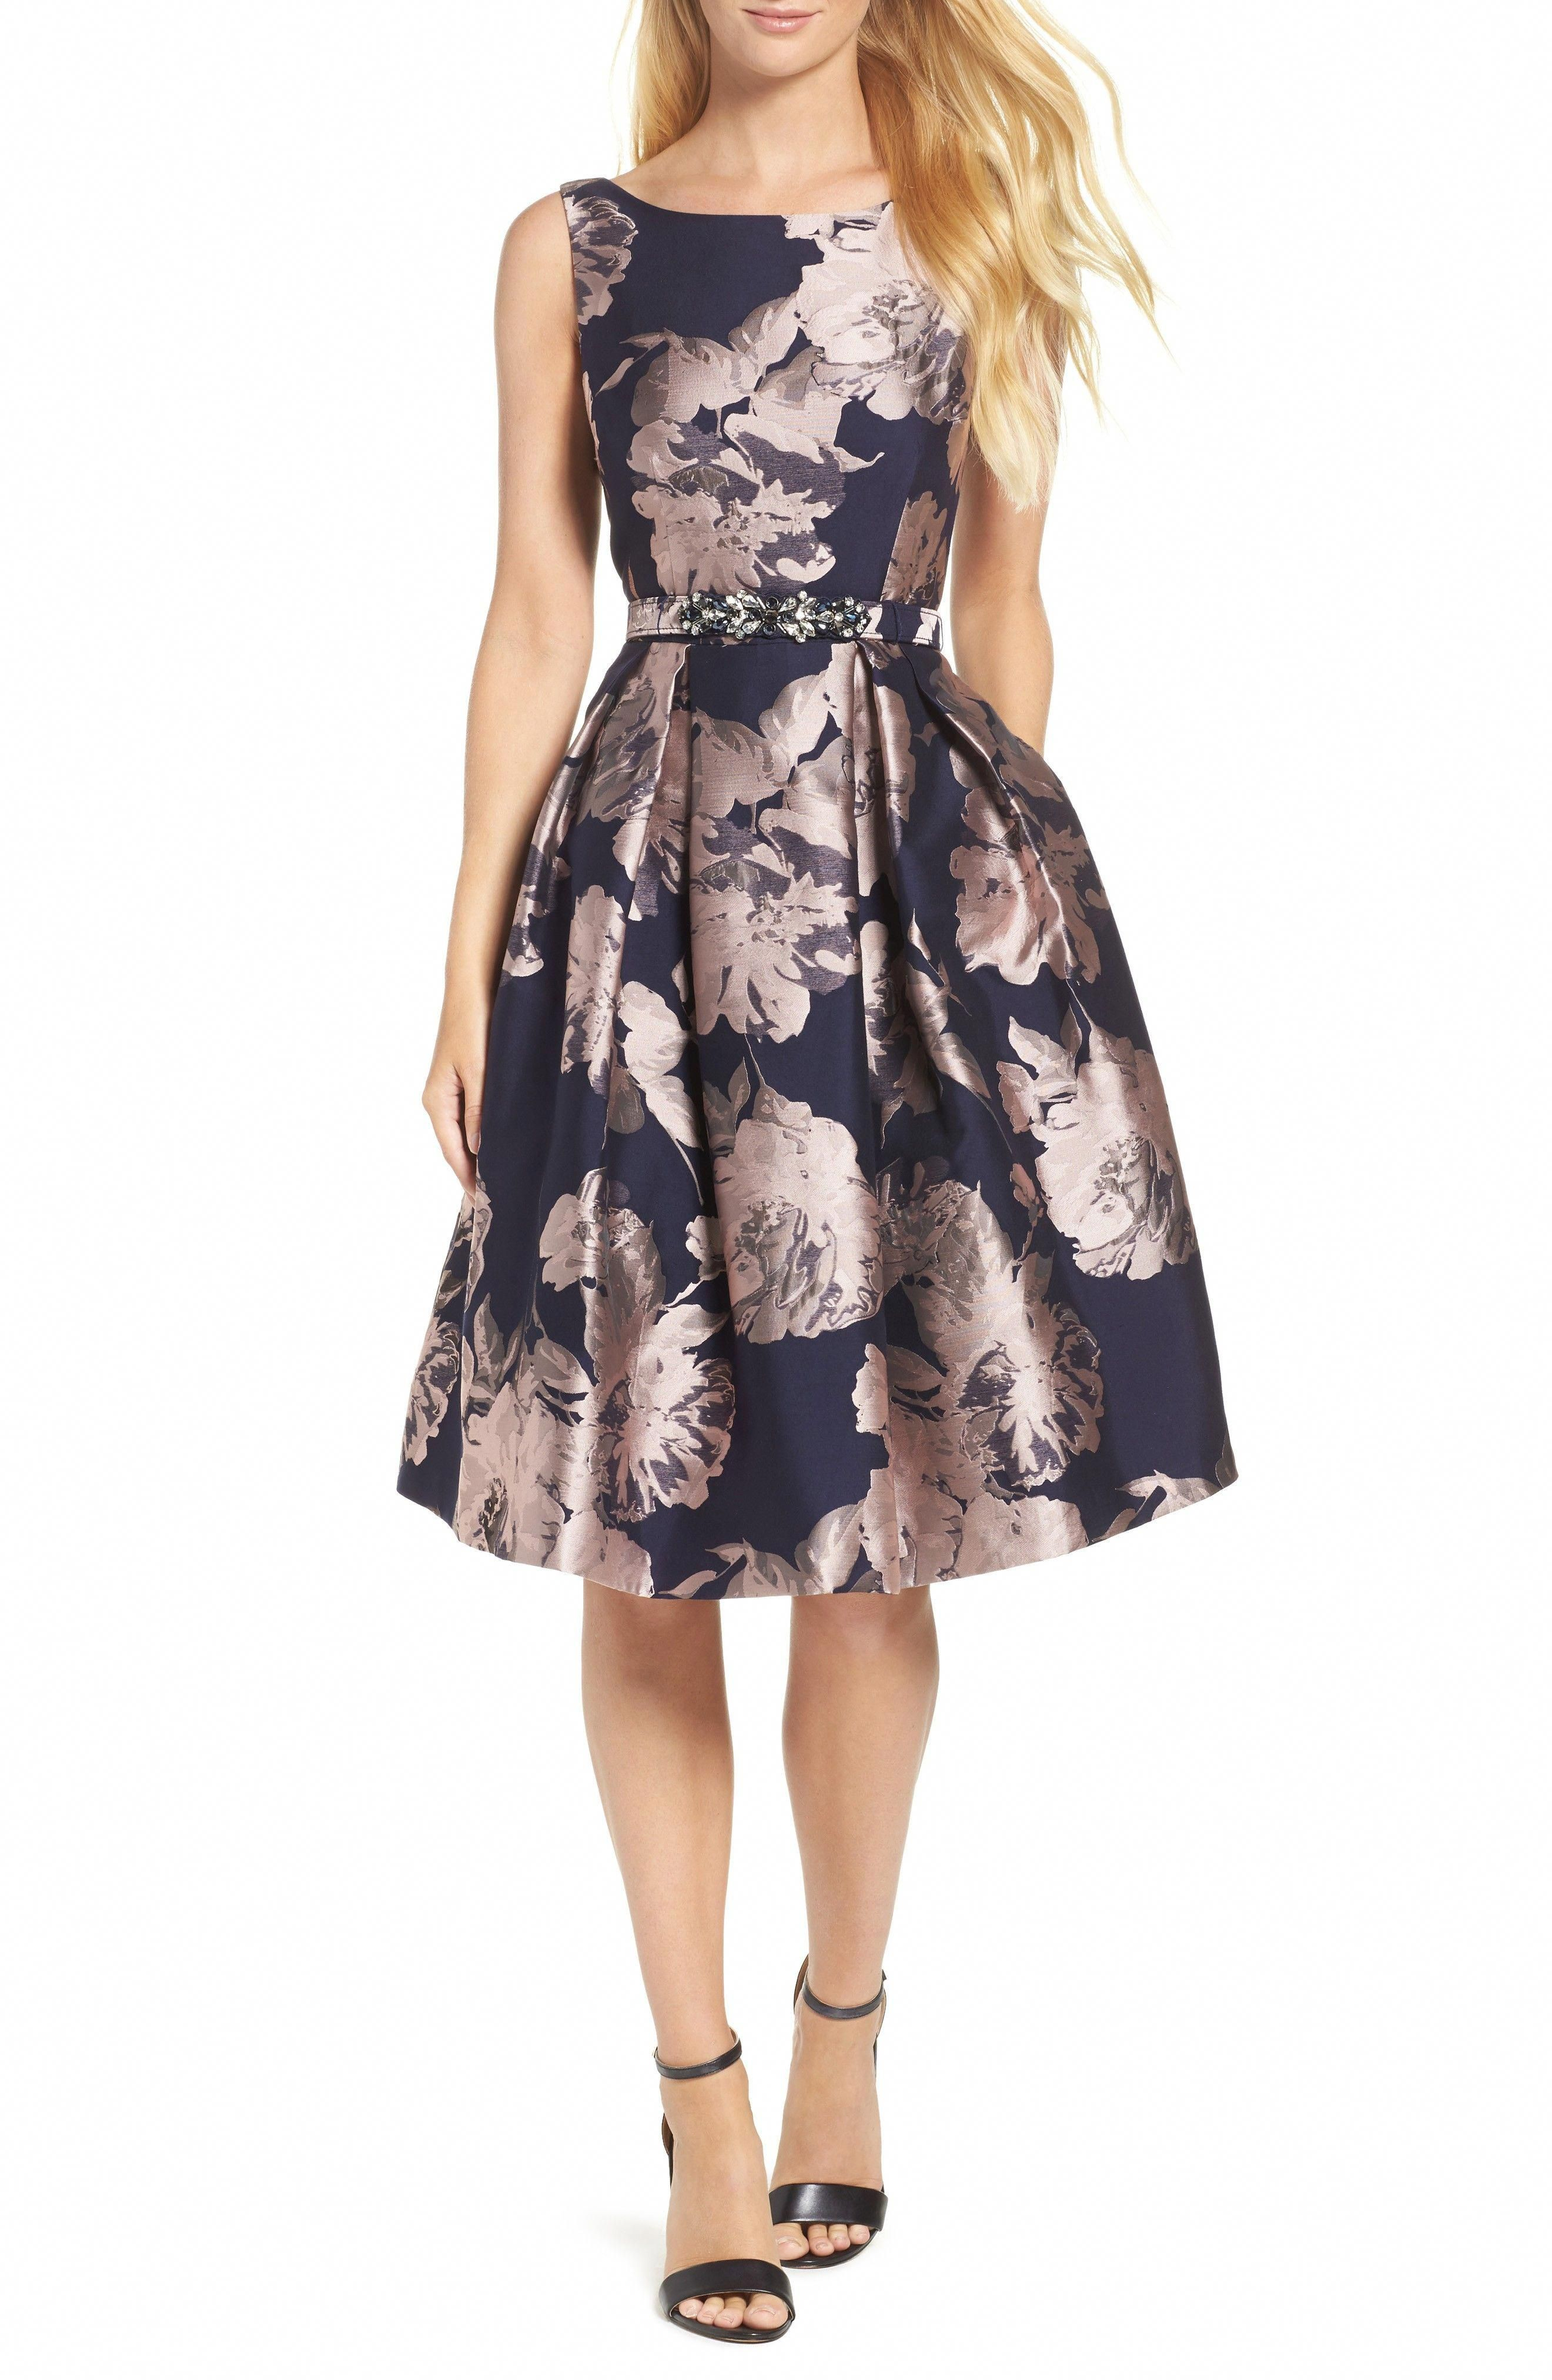 Fall Wedding Guest Dresses Casual cocktail dress